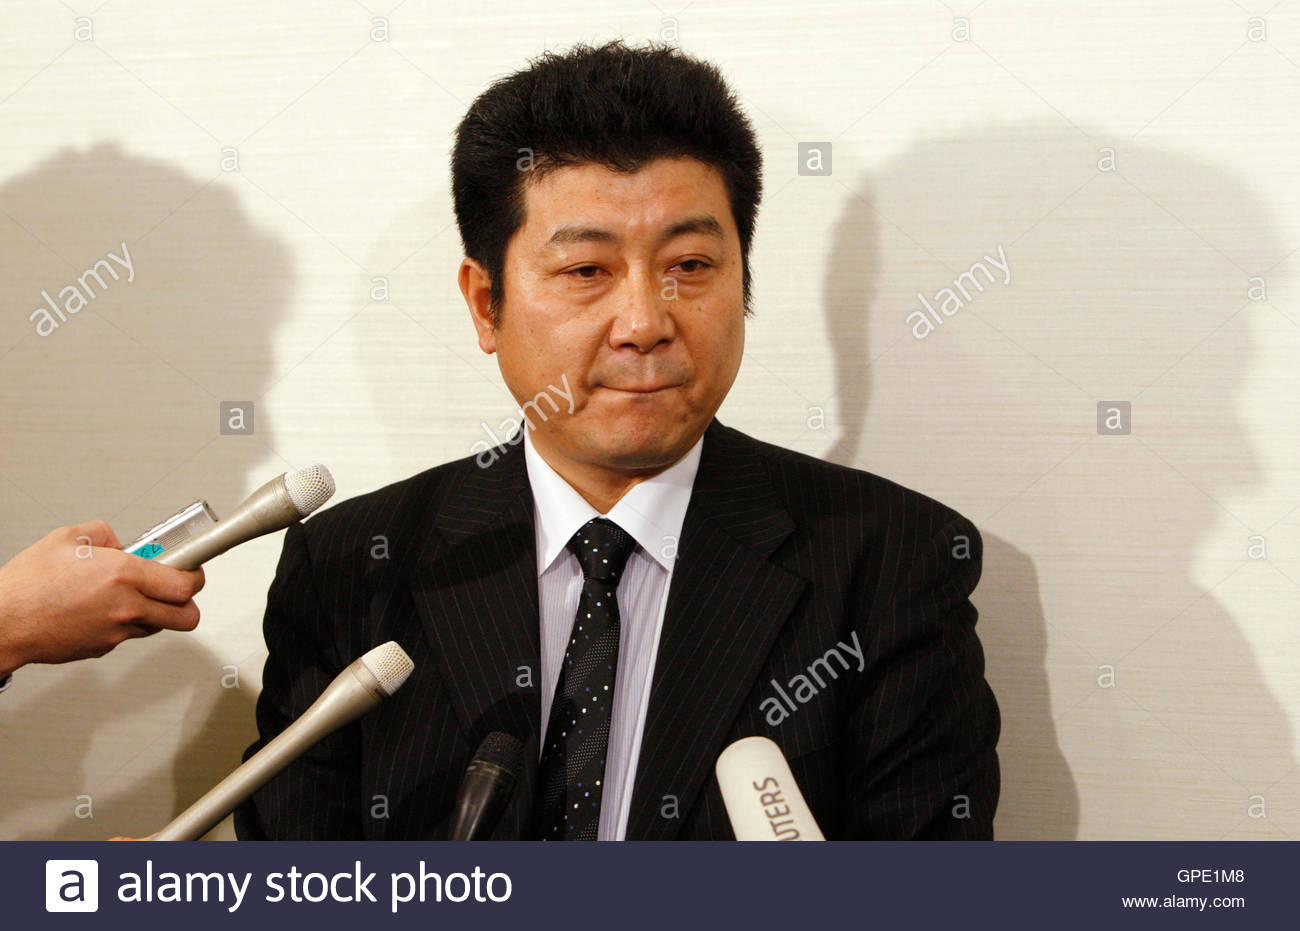 yasushi kikkawa a teachers consultant at shimane prefecture high stock photo yasushi kikkawa a teachers consultant at shimane prefecture high school education bureau answers questions by reporters after attending a